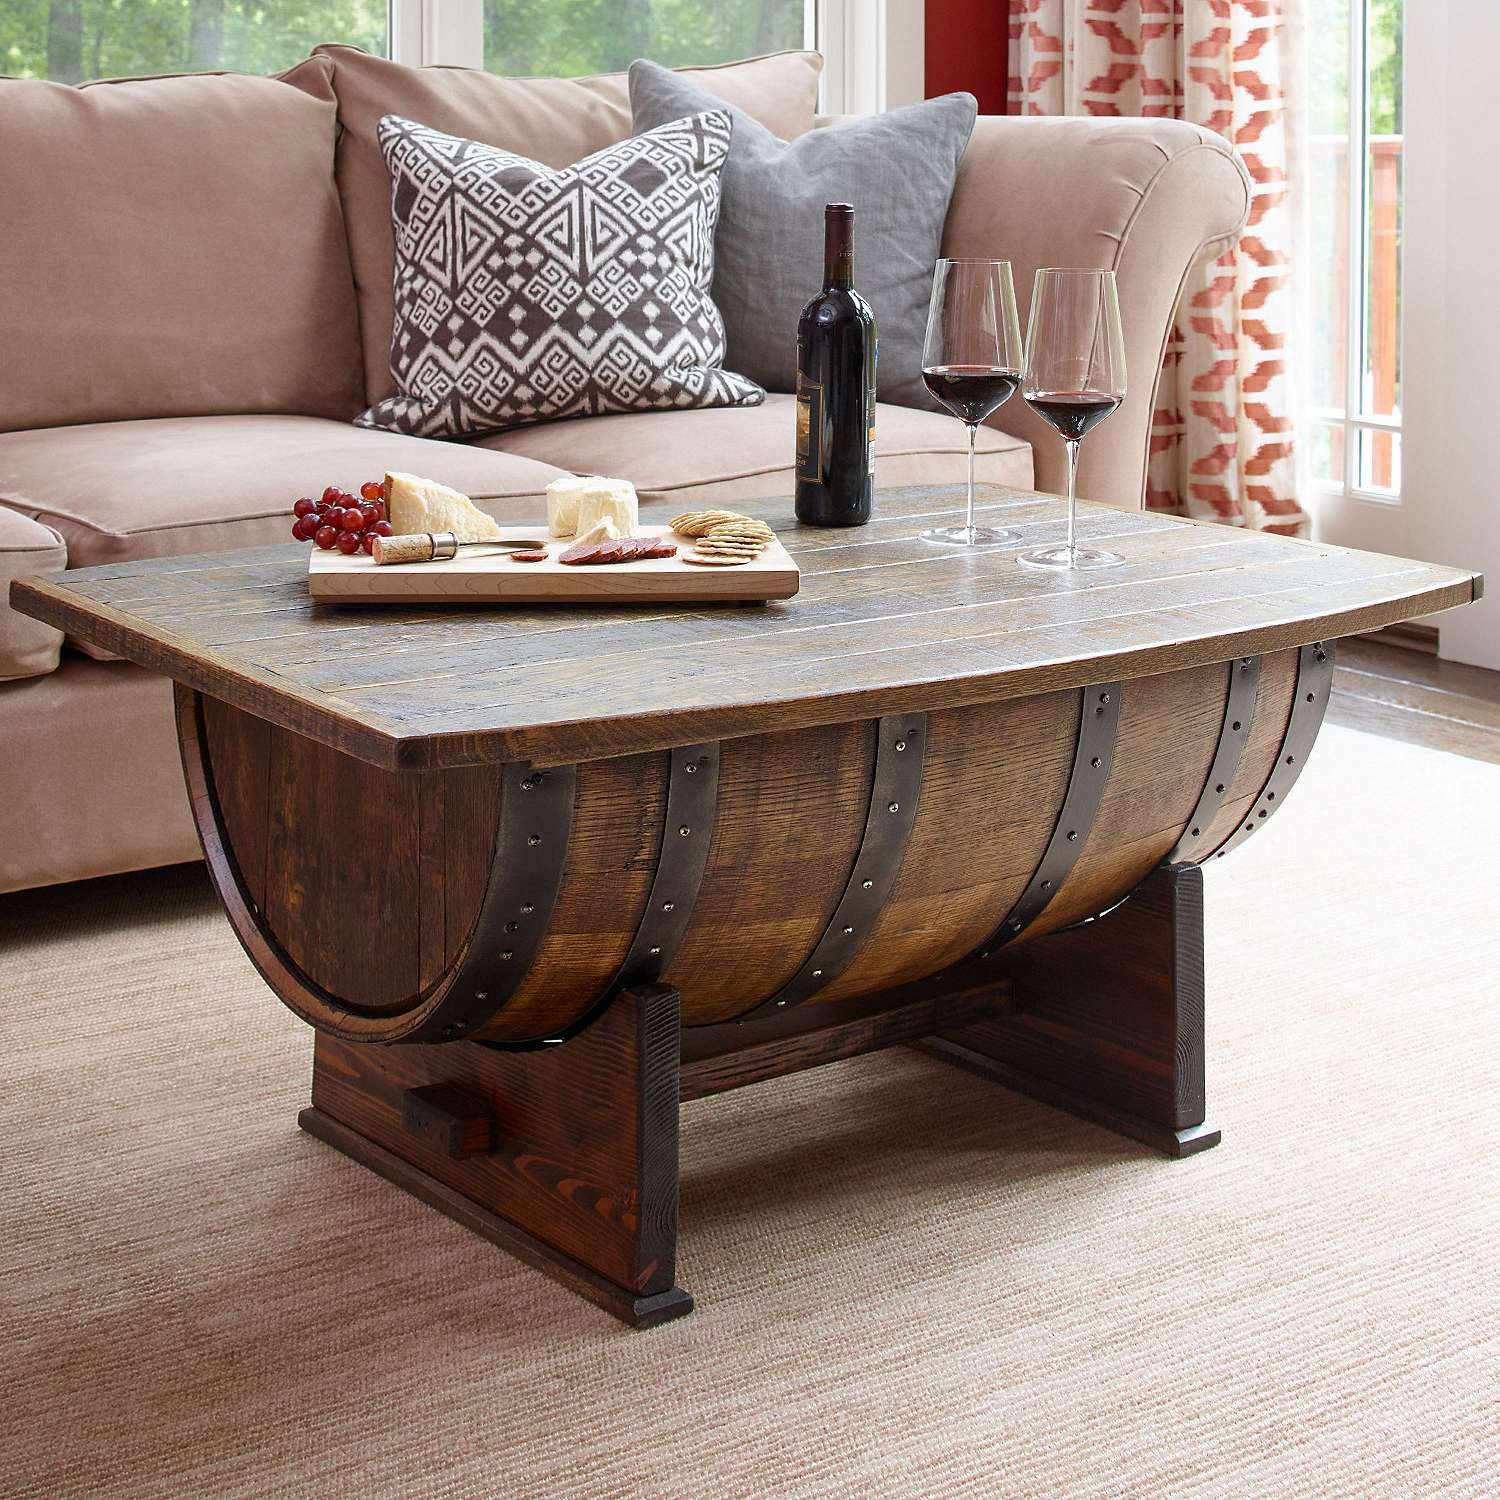 Handmade Vintage Oak Whiskey Barrel Coffee Table – Wine Enthusiast Regarding 2017 Retro Oak Coffee Tables (Gallery 9 of 20)